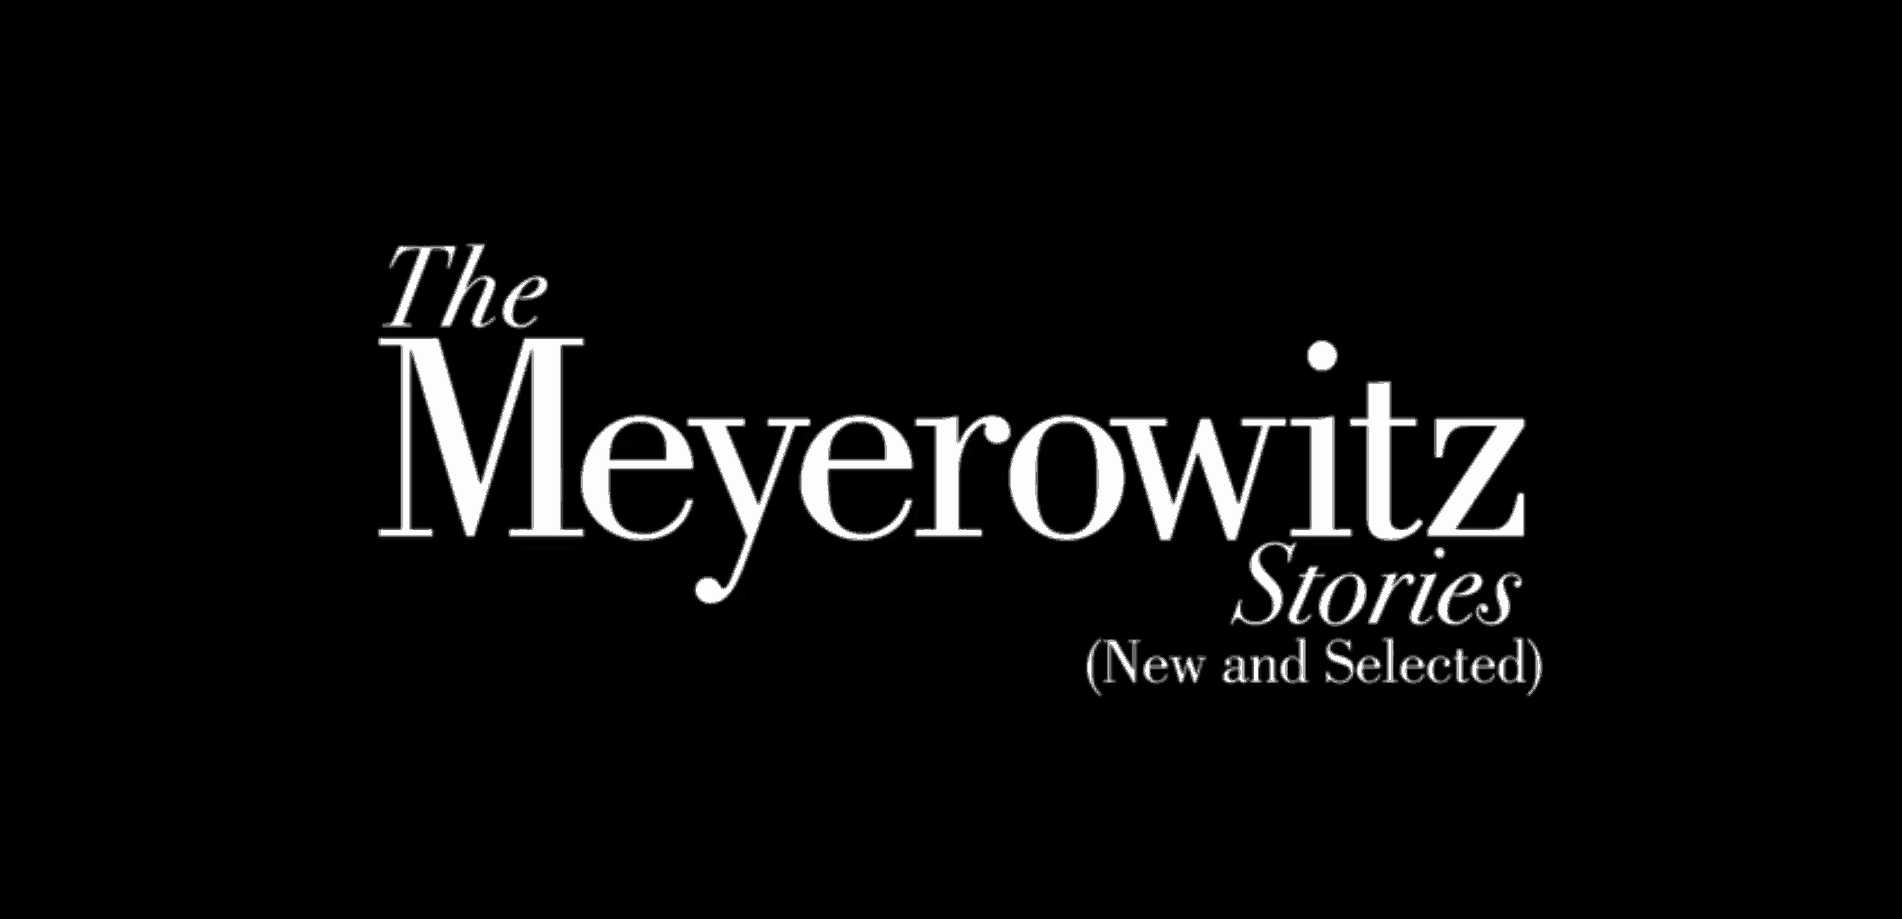 the mayerowitz stories noah baumbach film netflix